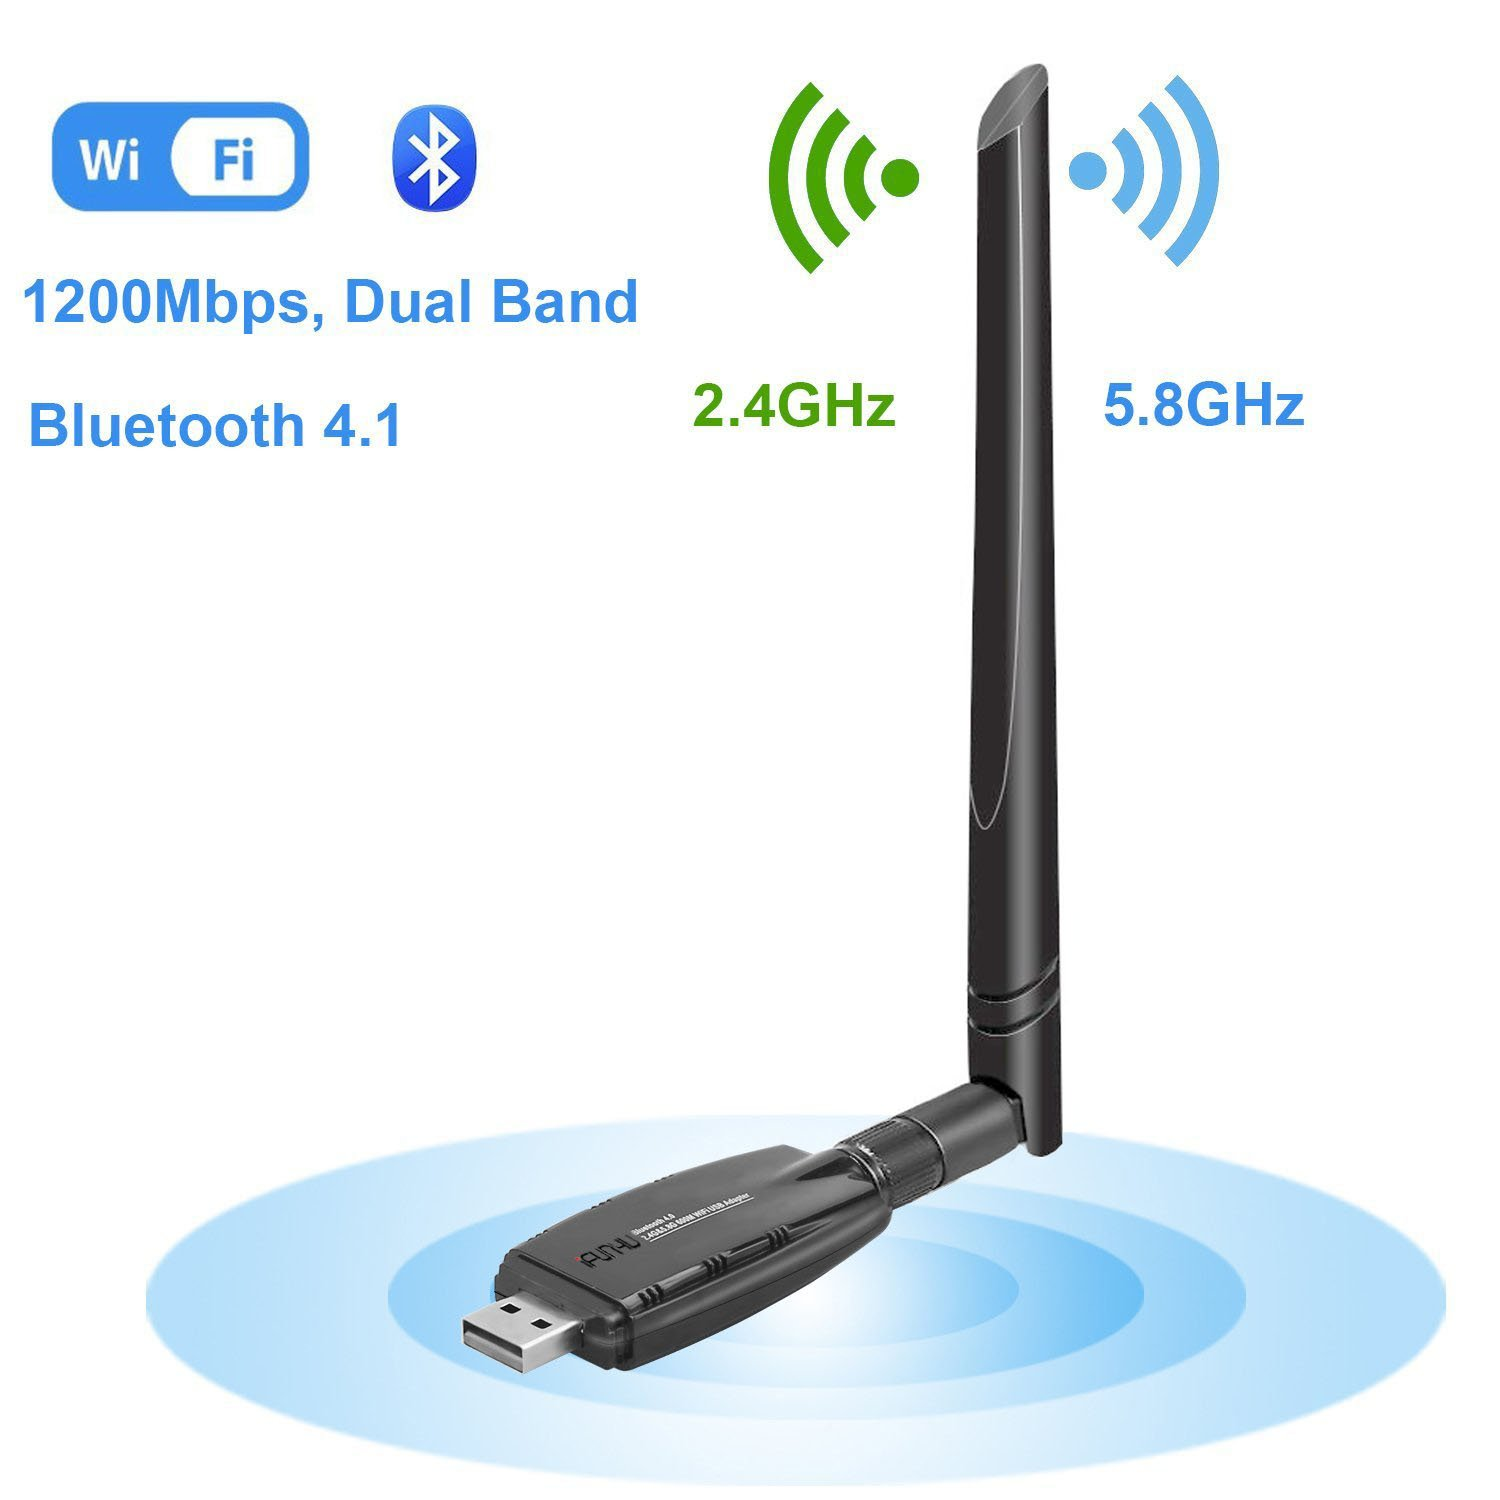 Wireless USB WiFi Bluetooth Adapter, WiFi Network Adapter LAN Card AC1200 Dual Band 2.4G/300Mbps+5.8G/867Mbps 5dBi Antenna for Desktop/Laptop/PC, Support Win10/8.1/8/7/XP/Vista/MAC OS 10.9-10.13